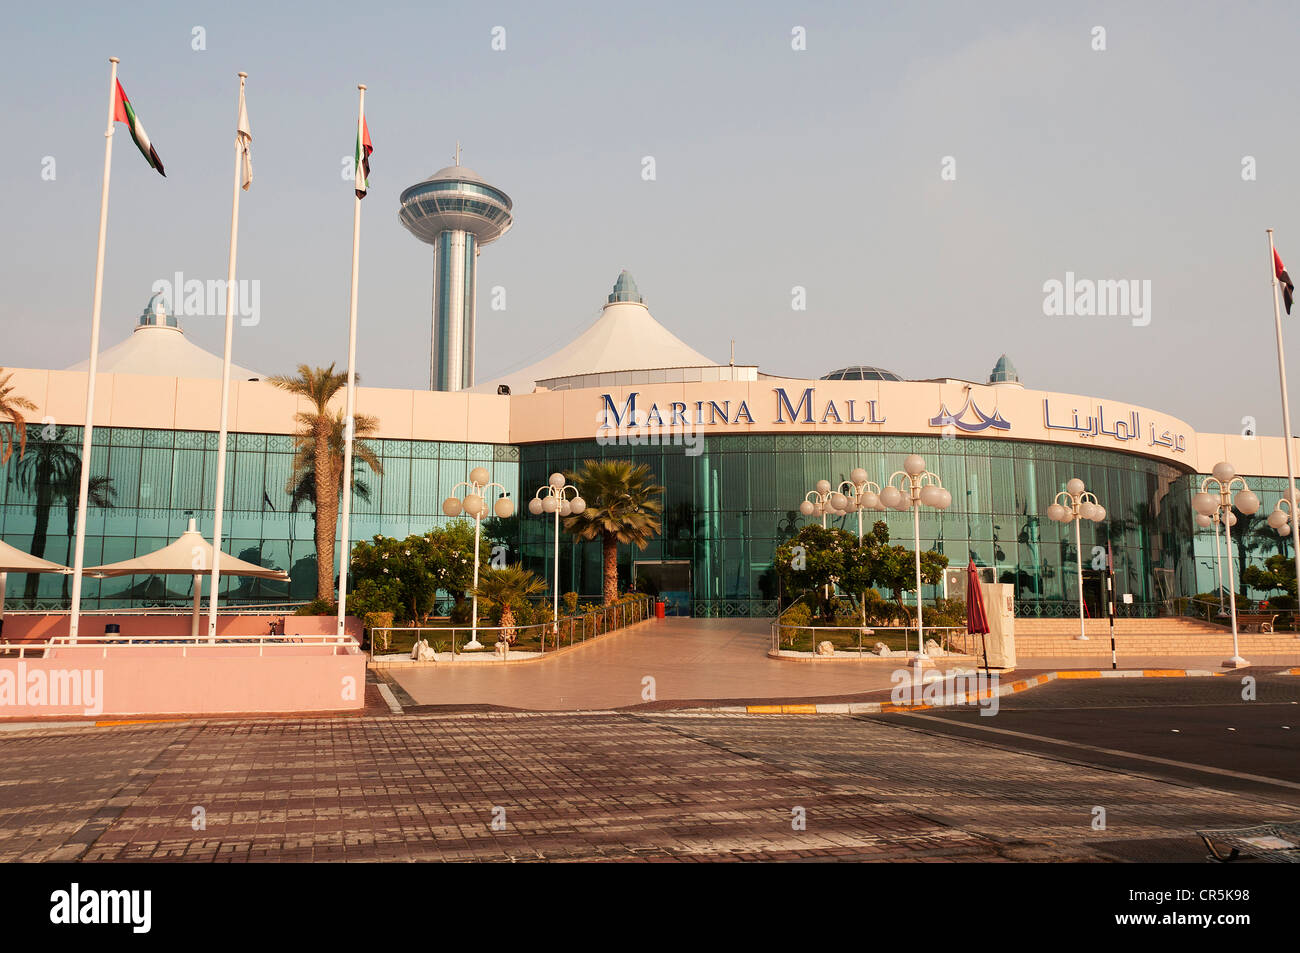 Elk206-1101 United Arab Emirates, Abu Dhabi, Marina Mall - Stock Image